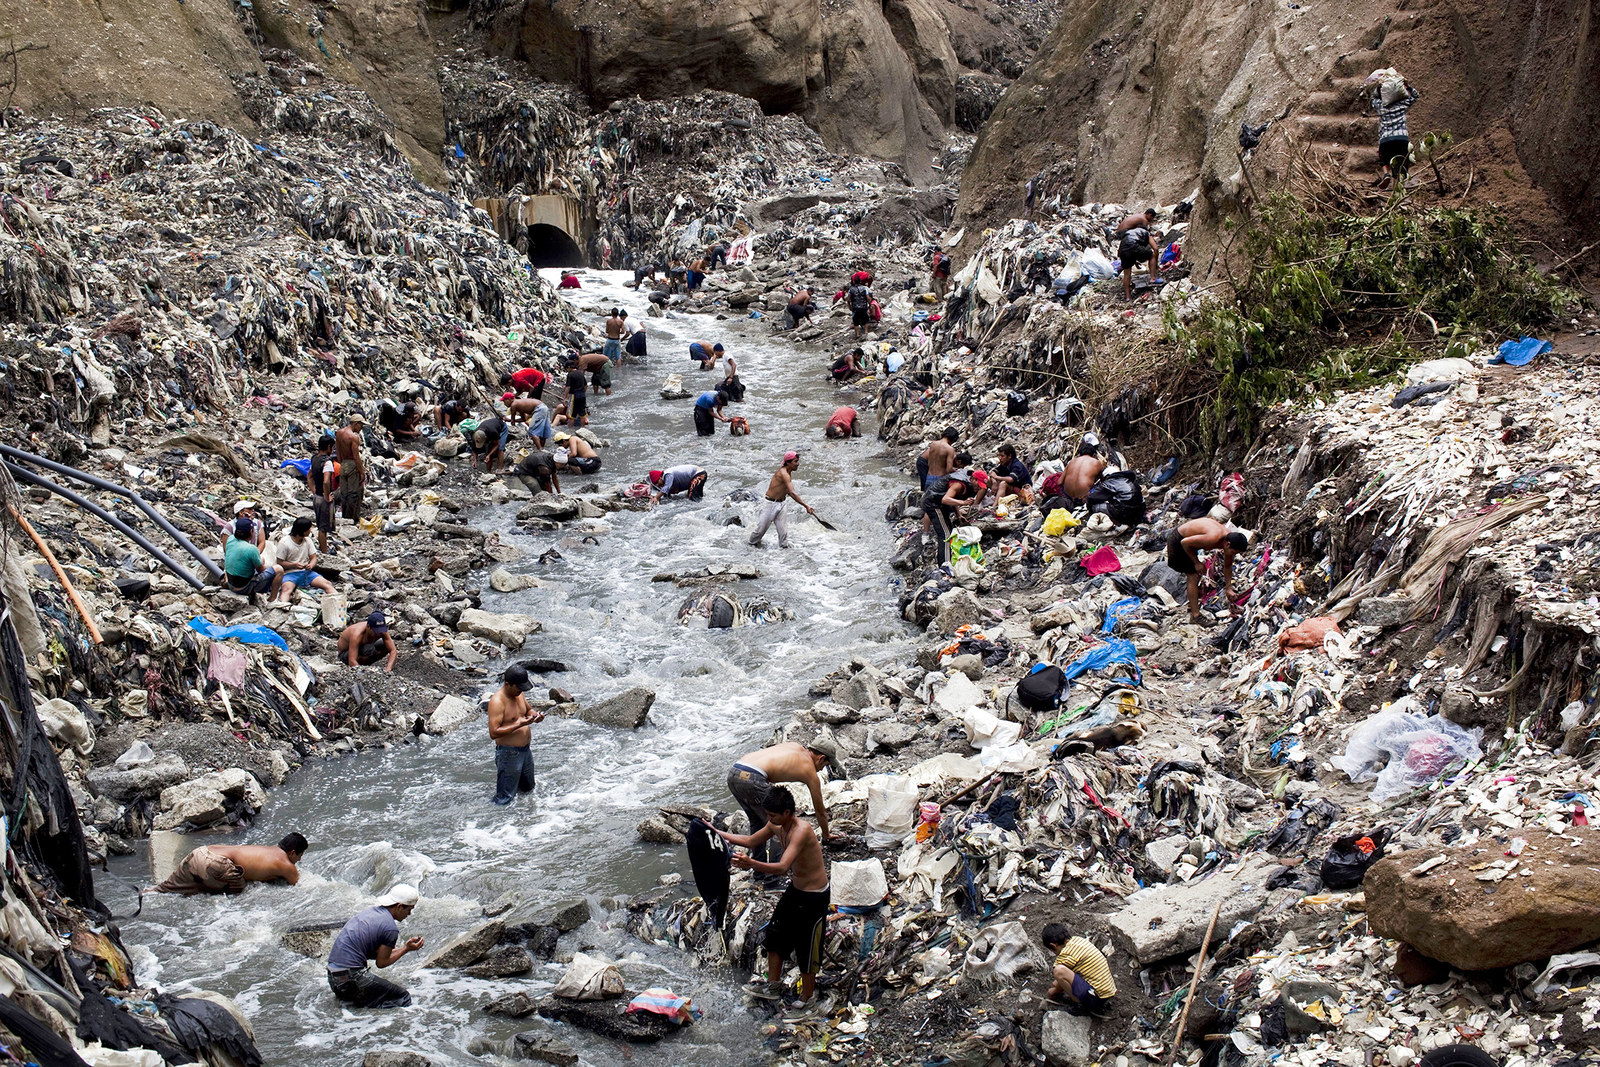 """In this photo taken Oct. 19, 2011, people search for scrap metal in contaminated water at the bottom of one of the biggest trash dumps in Guatemala City, known as """"The Mine."""""""